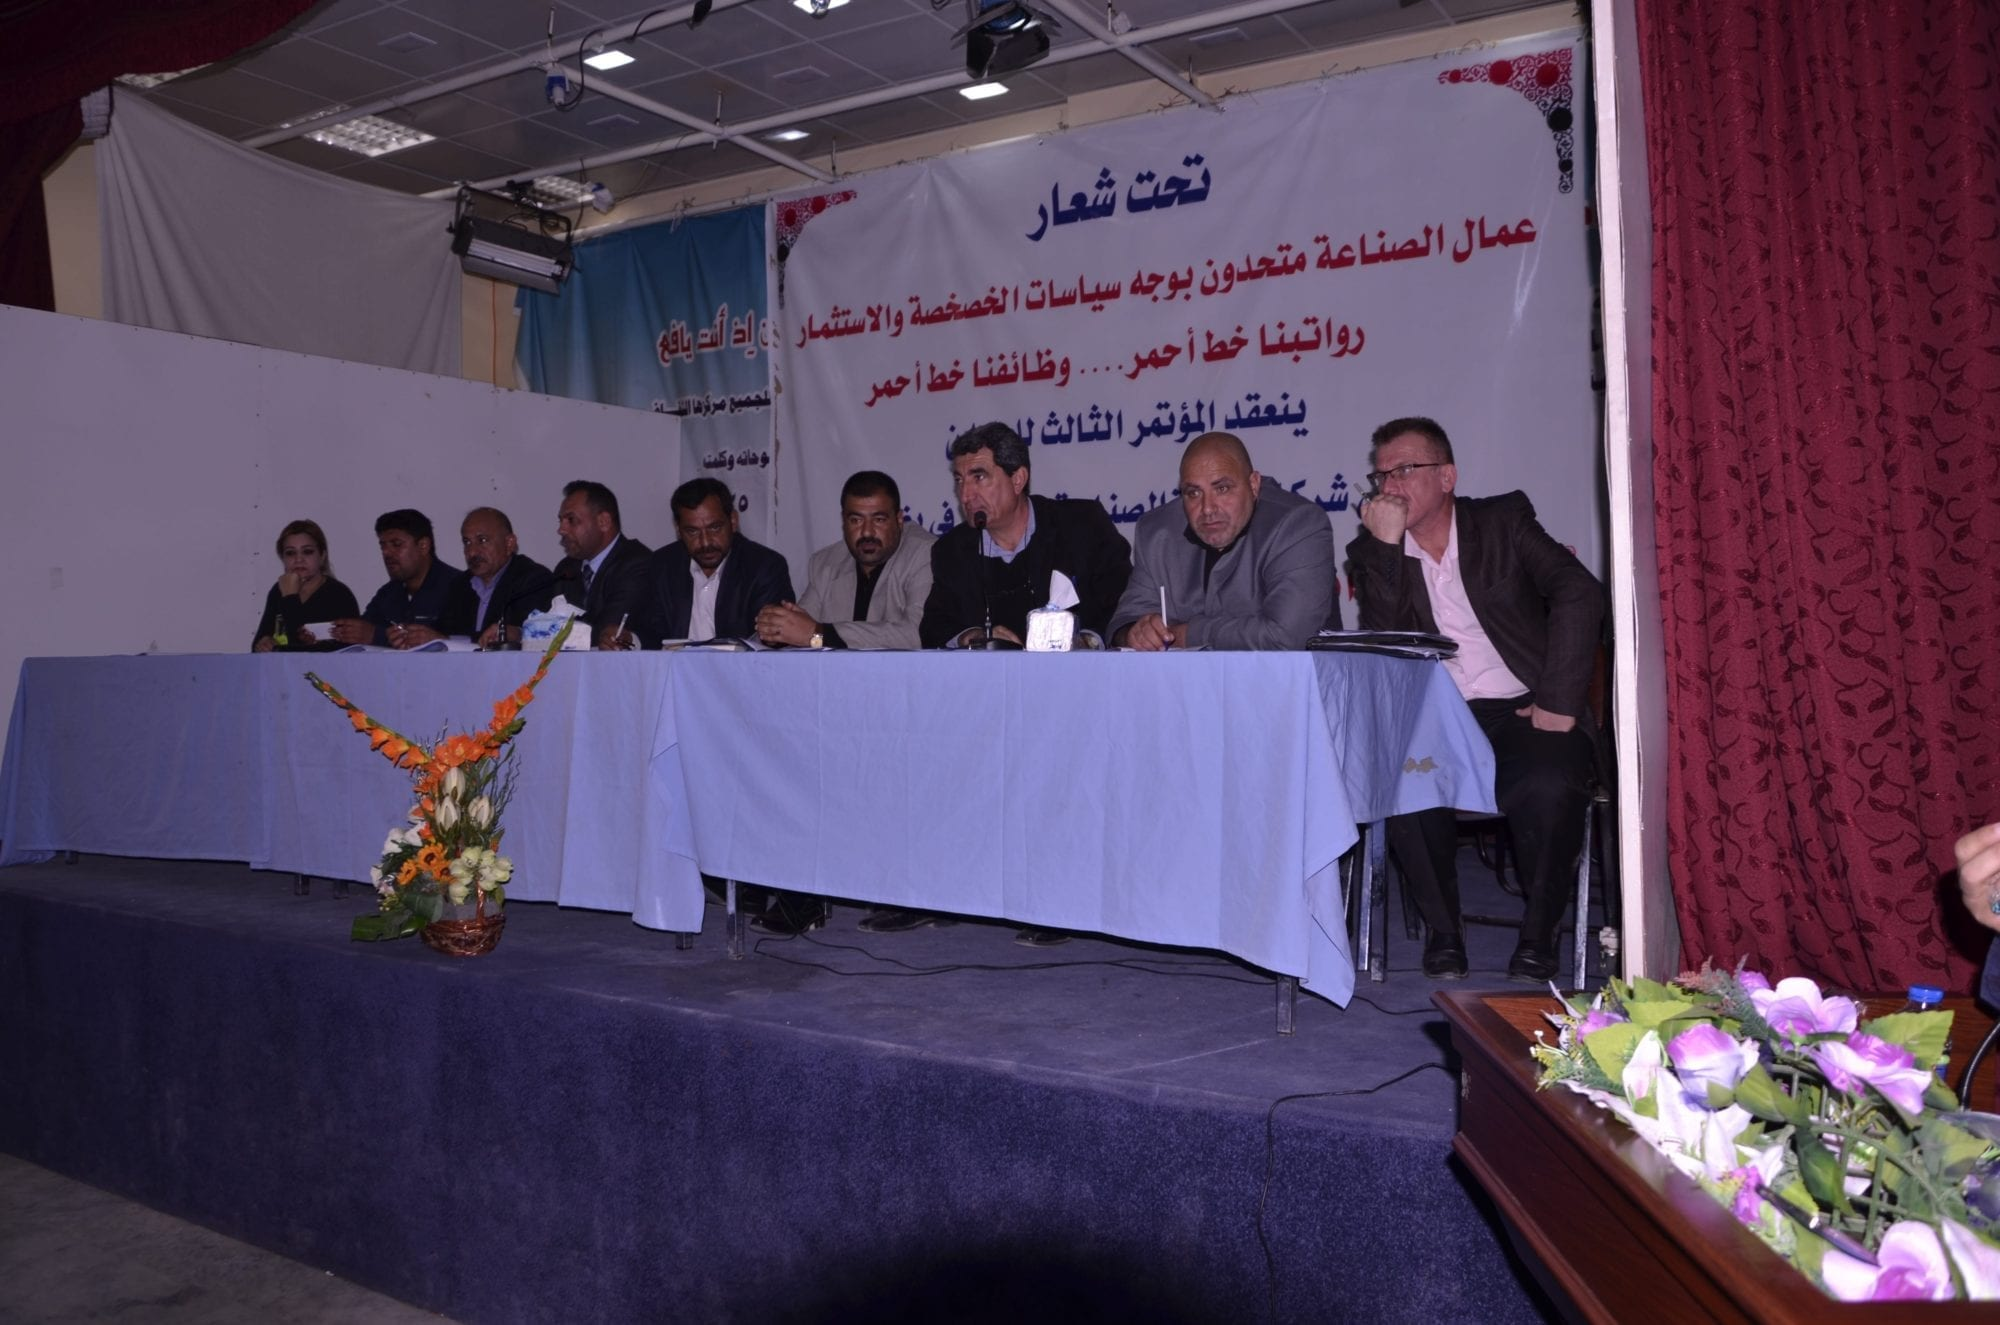 In Iraq, Public-Sector Workers Stand up for Their Rights